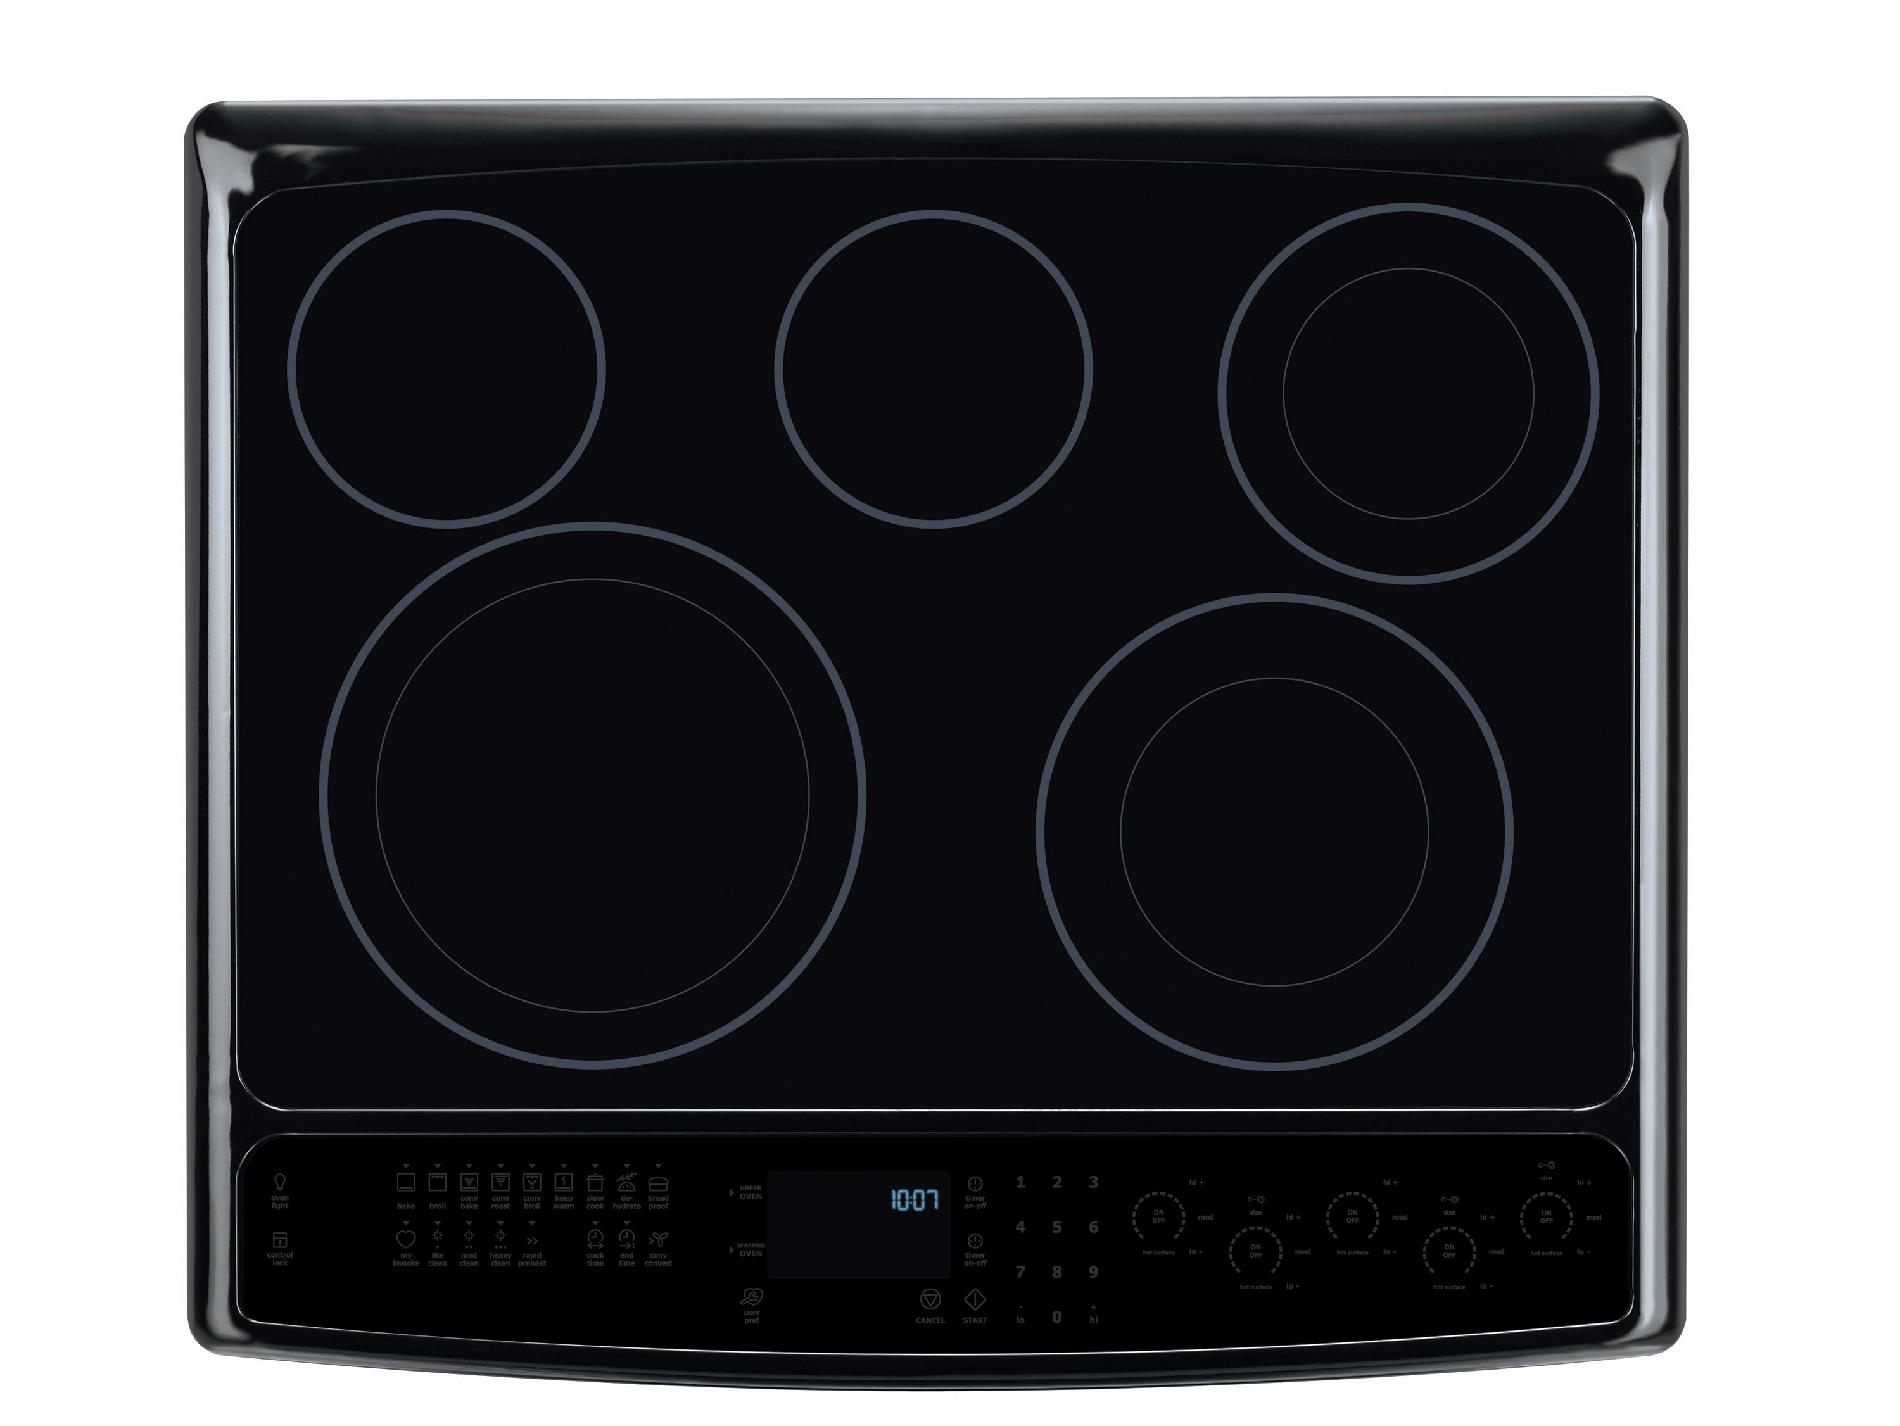 """Electrolux 30"""" Slide-In Electric Range w/ IQ-Touch™ Controls - Black"""